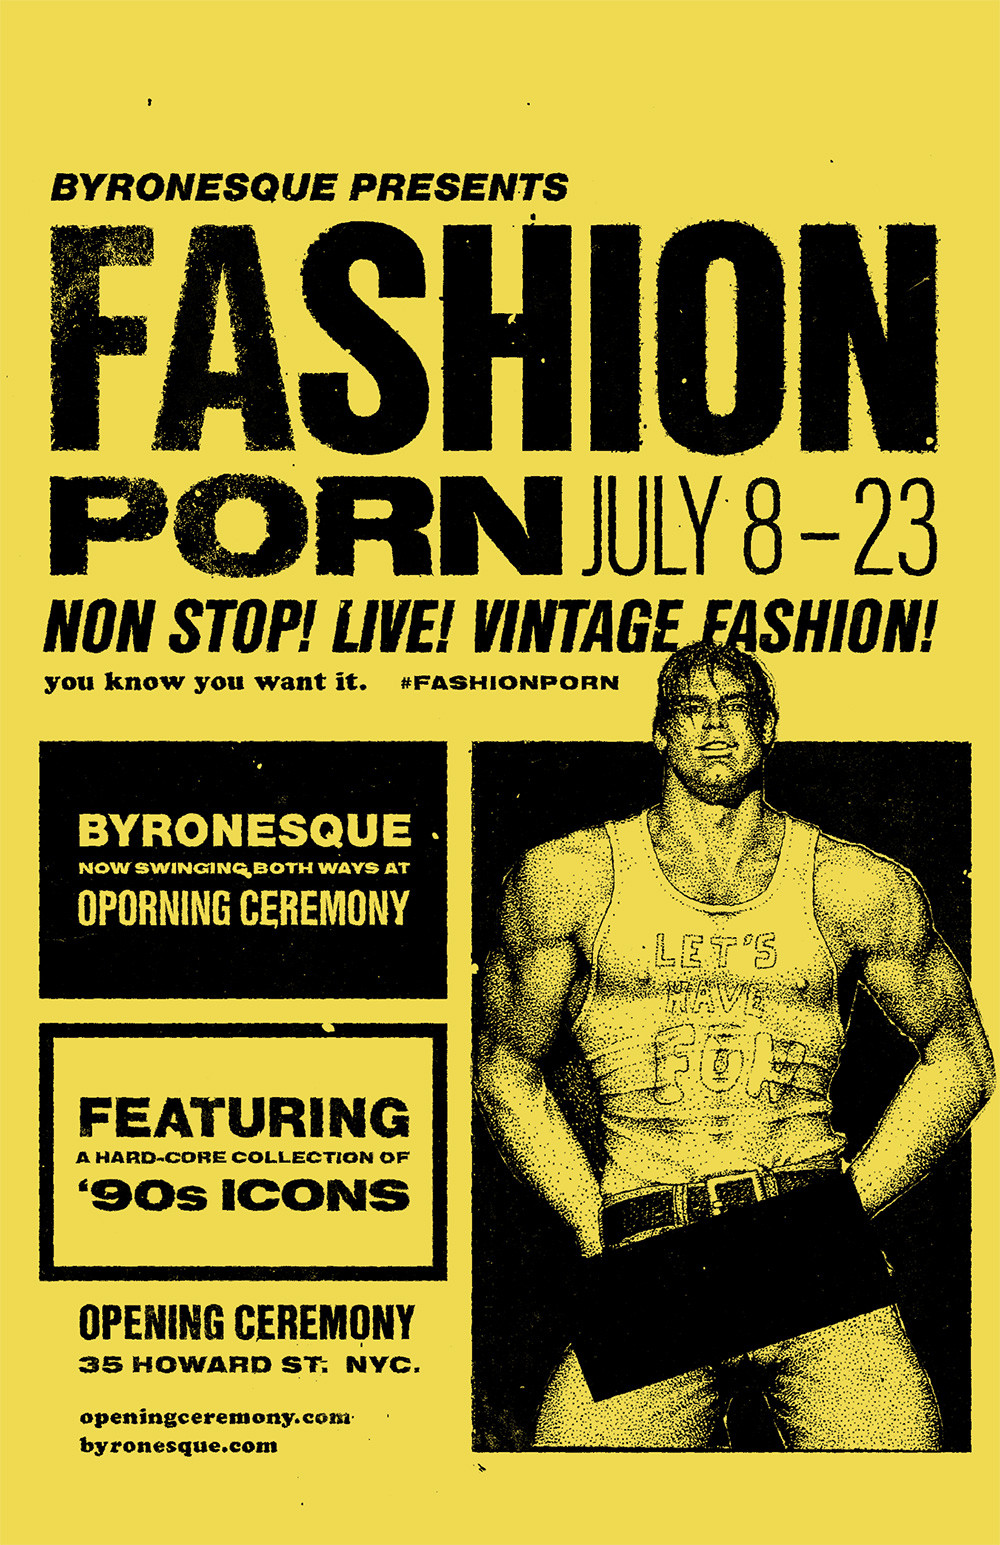 Byronesque Opening Ceremony Pop-Up Event